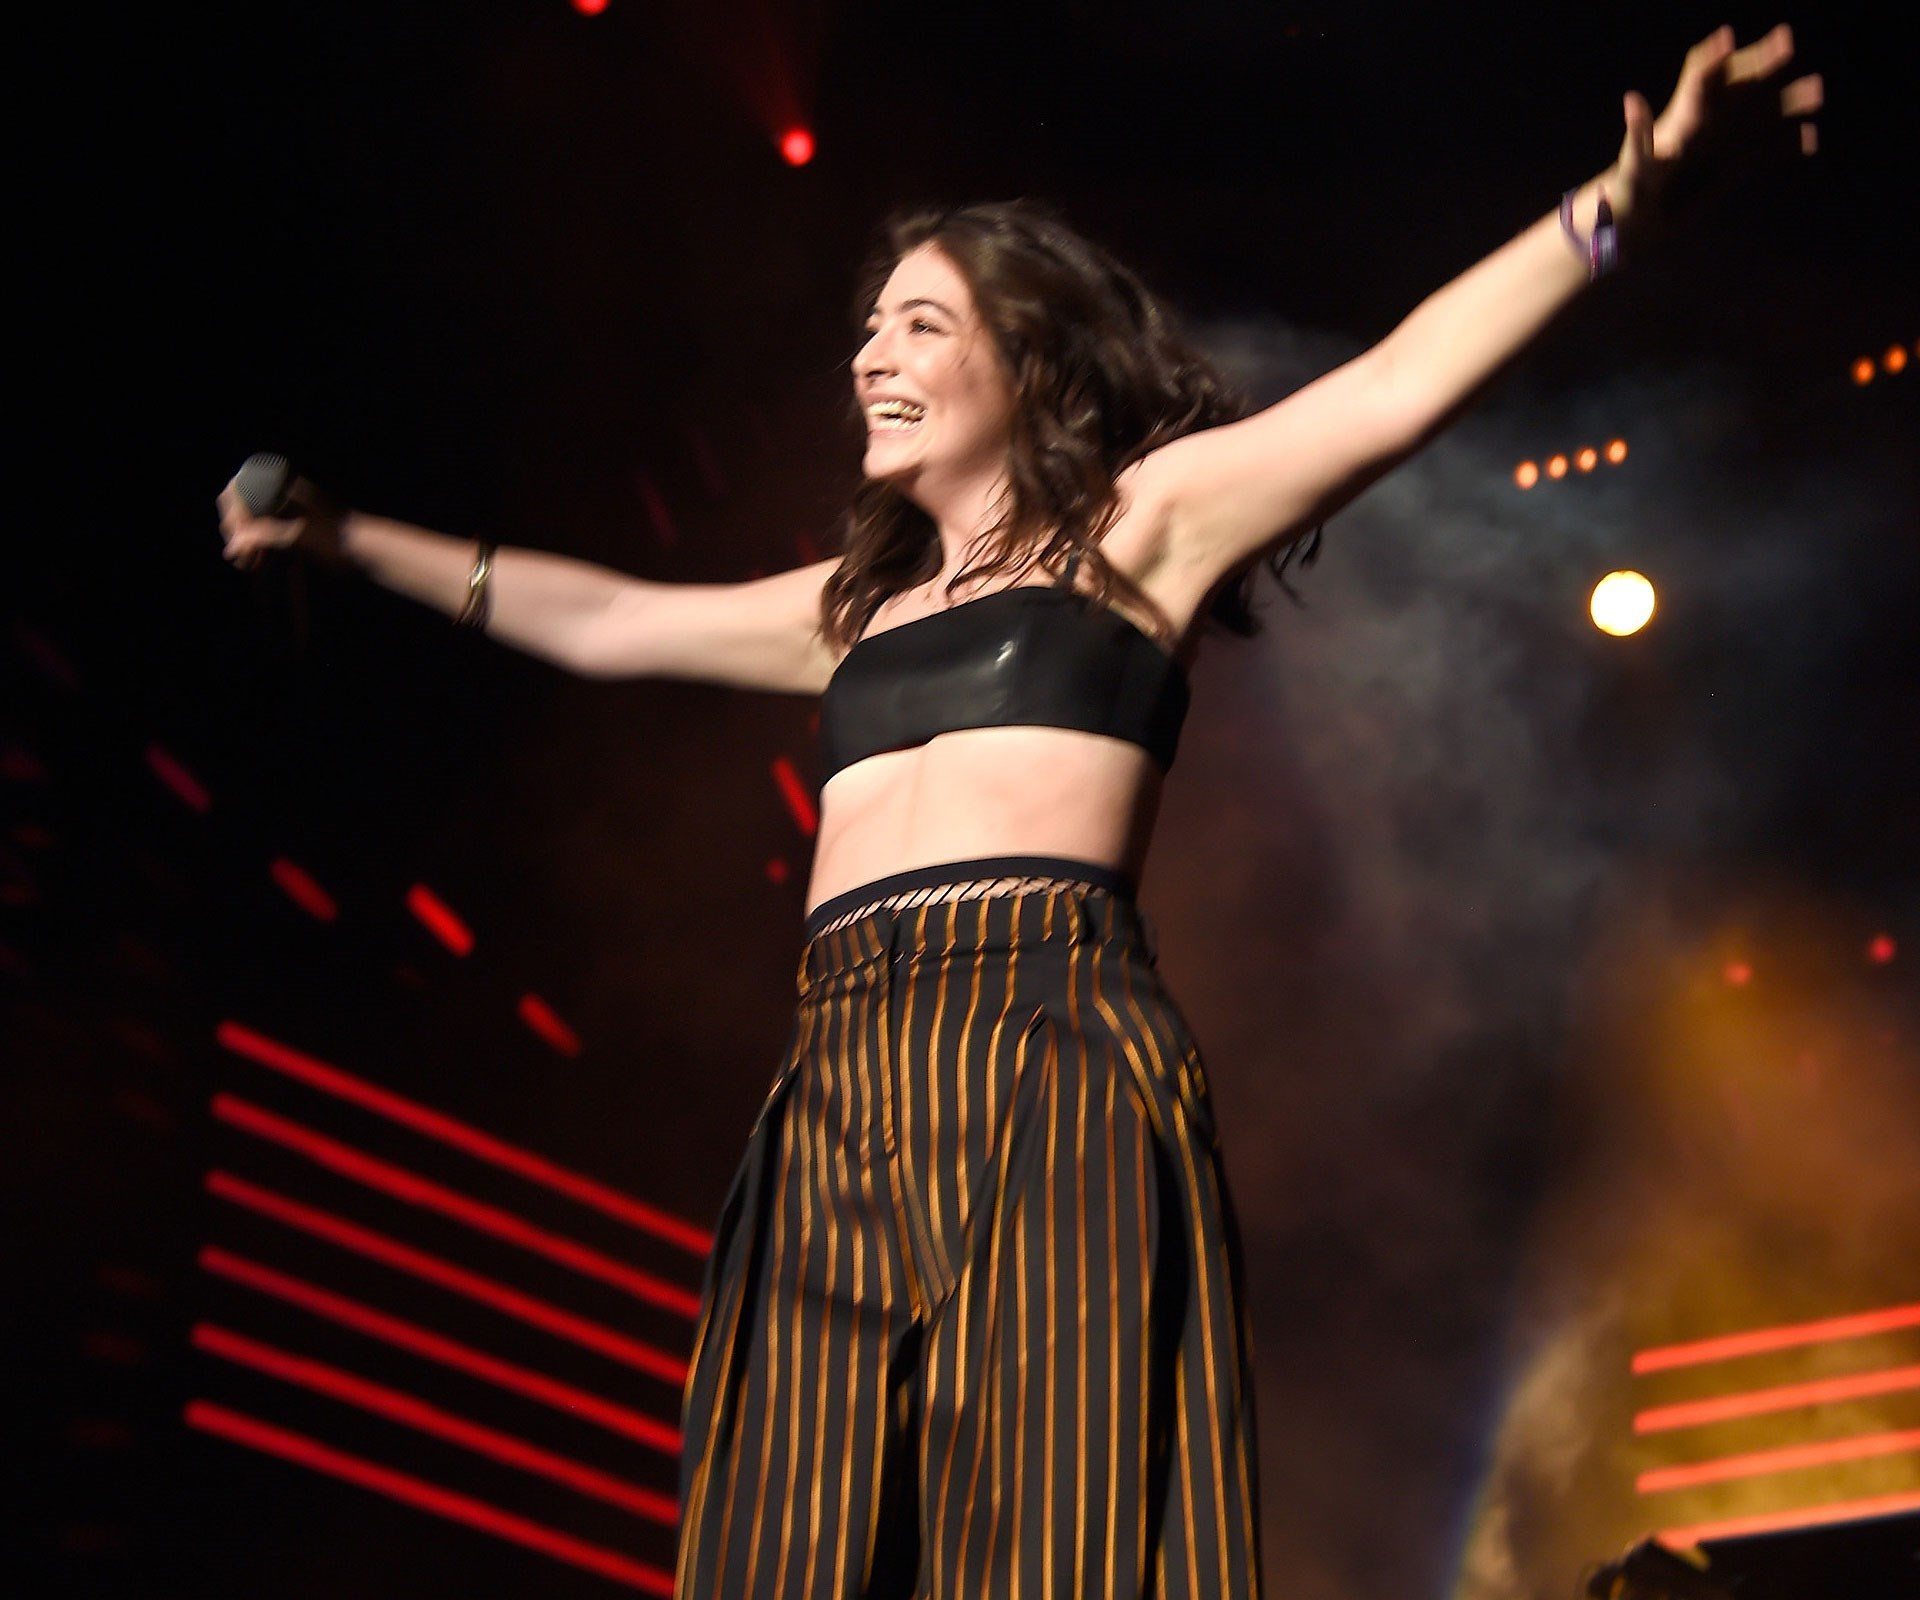 "[**Apr 18, 2016**](http://www.womansday.co.nz/celebrity/new-zealand-celebrities/lorde-sends-crowd-crazy-at-coachella-4501|target=""_blank"") The New Zealand singer stunned on stage in a black crop top and high-waisted pants. Photo: Getty"